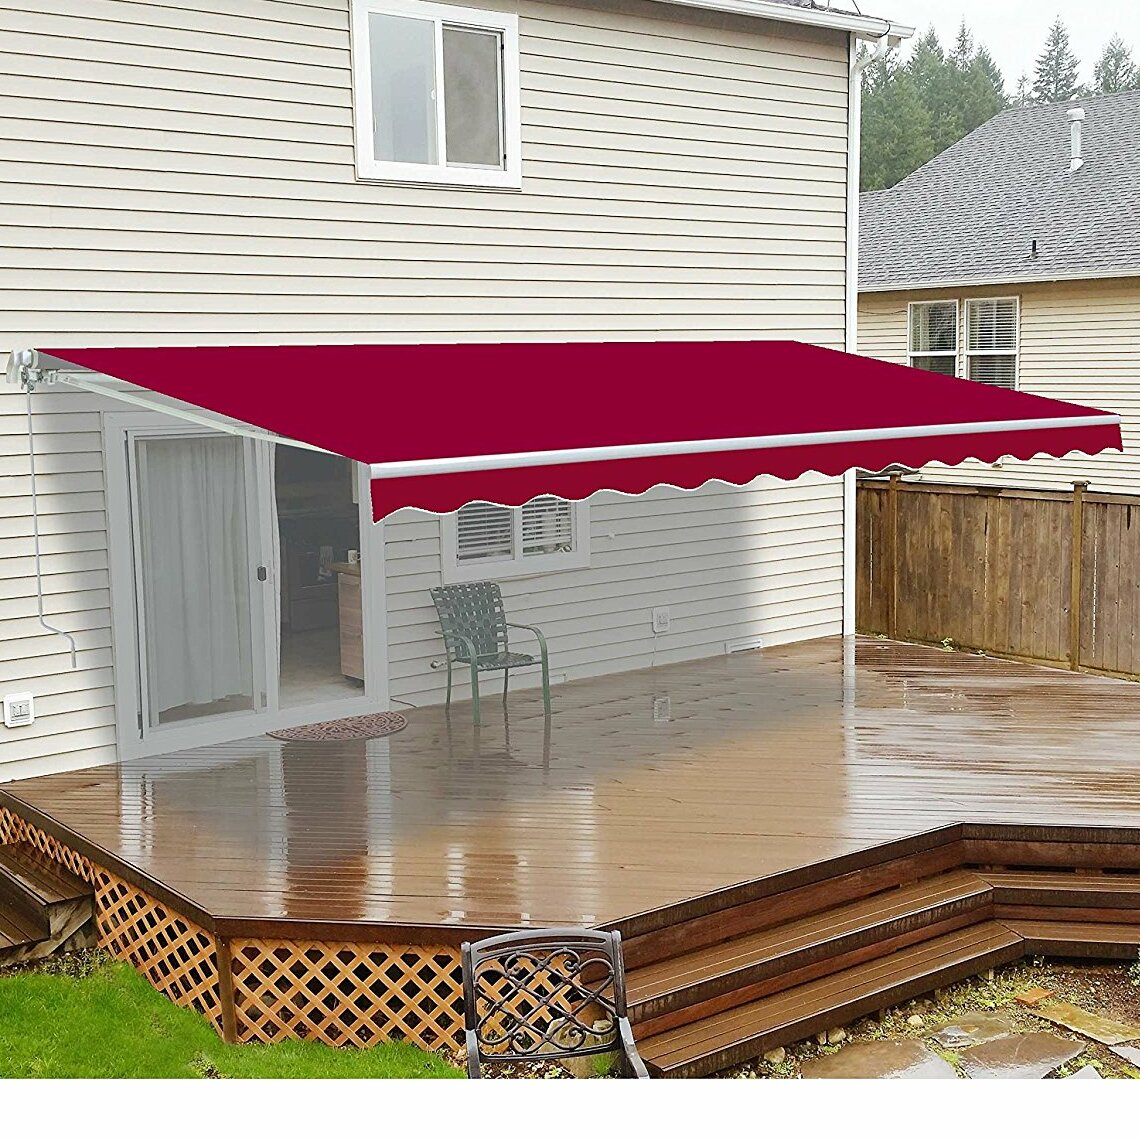 +78 Sunsetter Awning Parts List | Home Decor